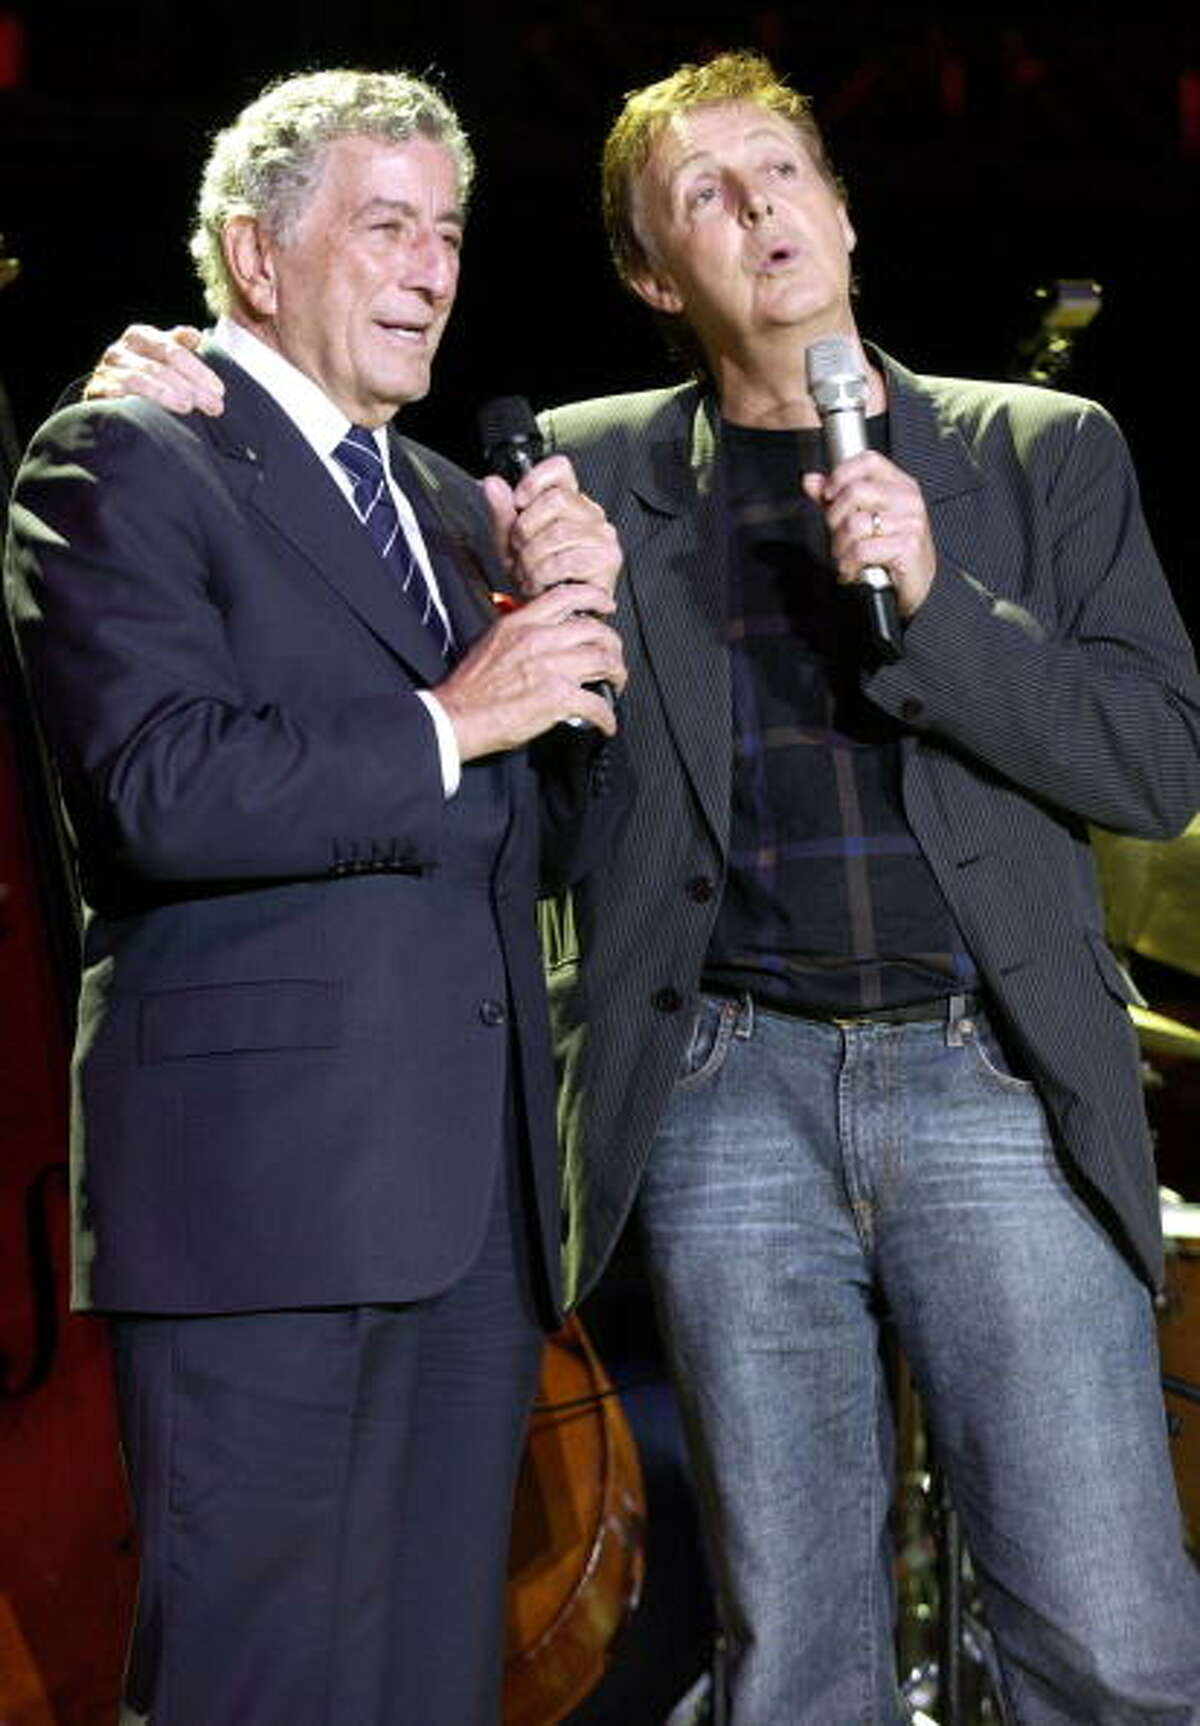 2004: Musicians Tony Bennett and Sir Paul McCartney perform at the 18th Annual Bridge School Benefit event held at the Shoreline Amphitheater on October 23, 2004.